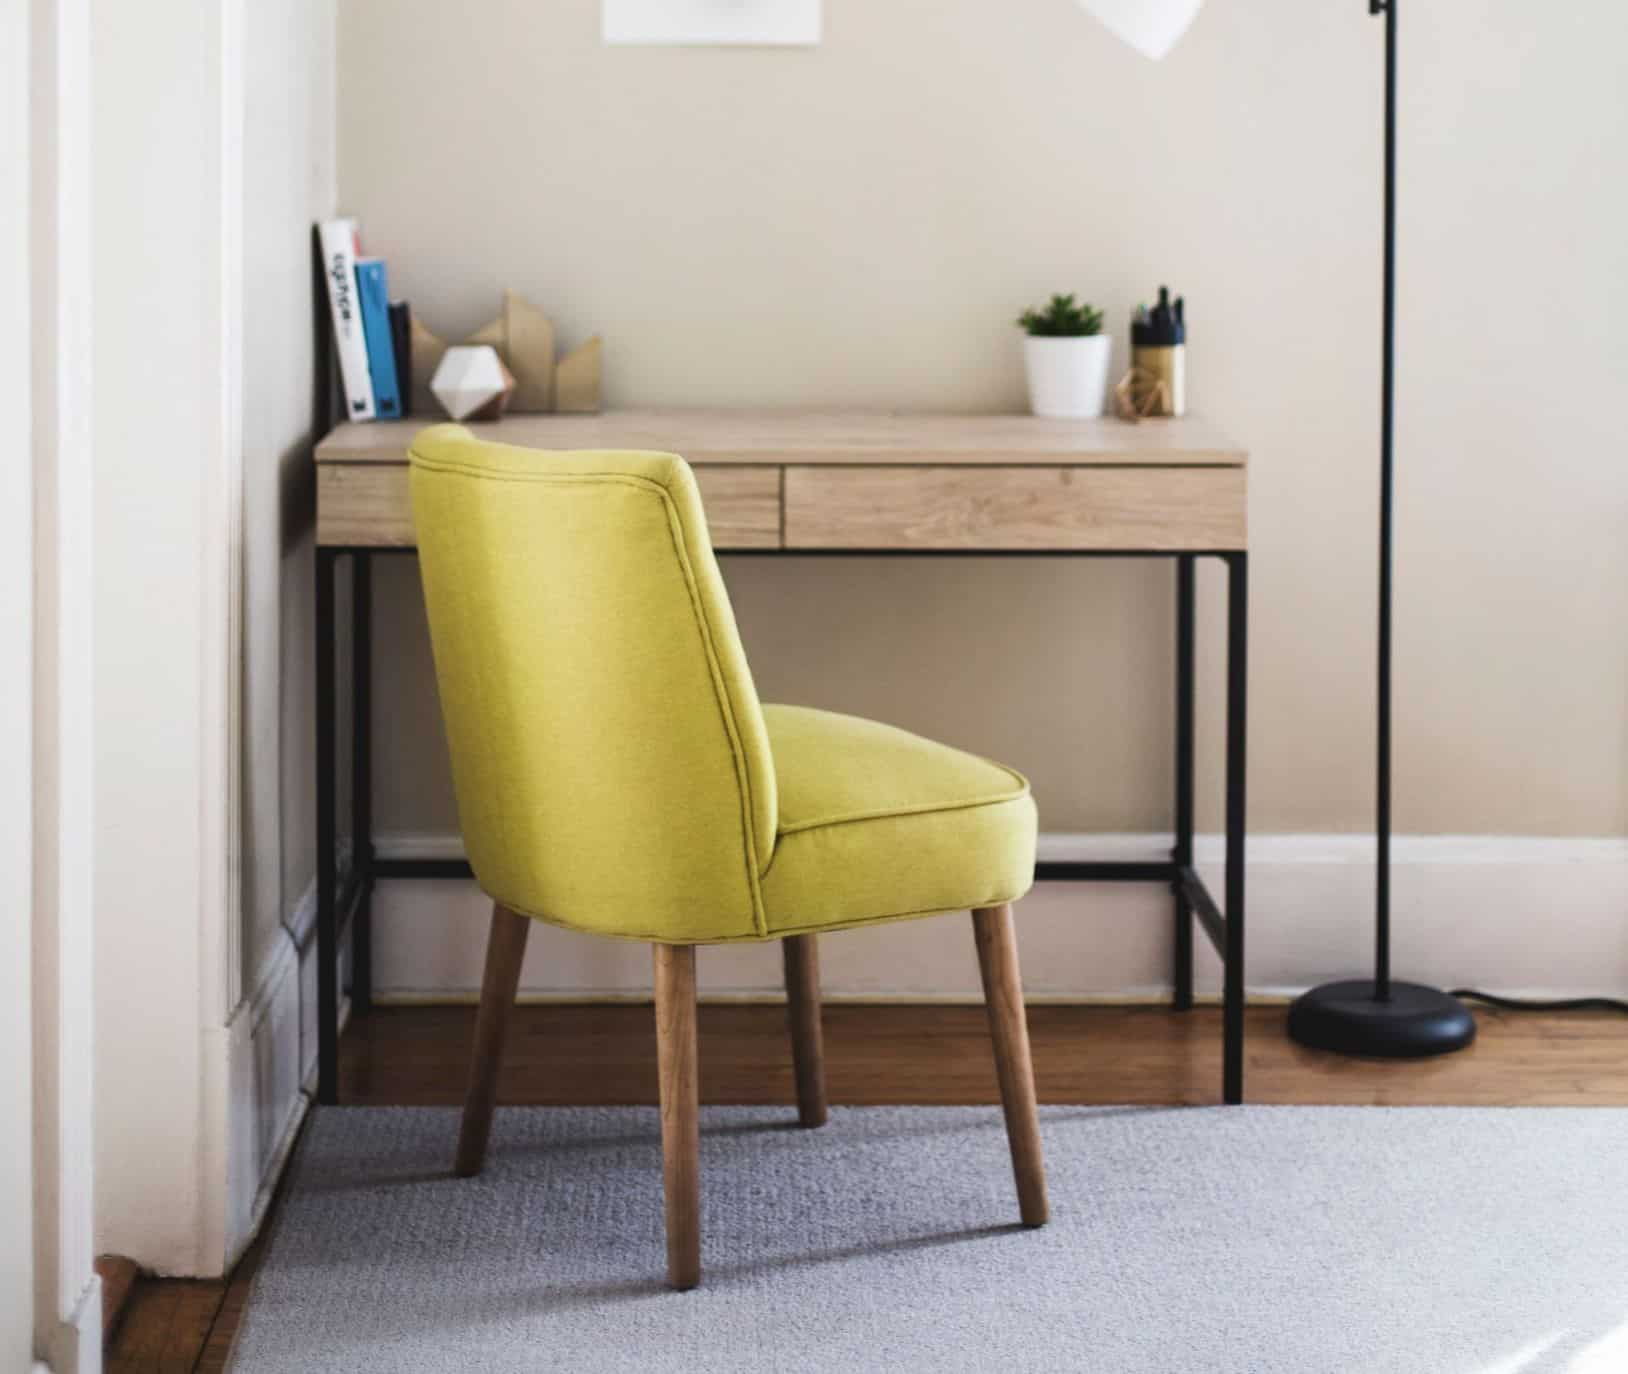 11-easy-effective-ways-maximise-space-home-office-5-pick-the-right-furniture-